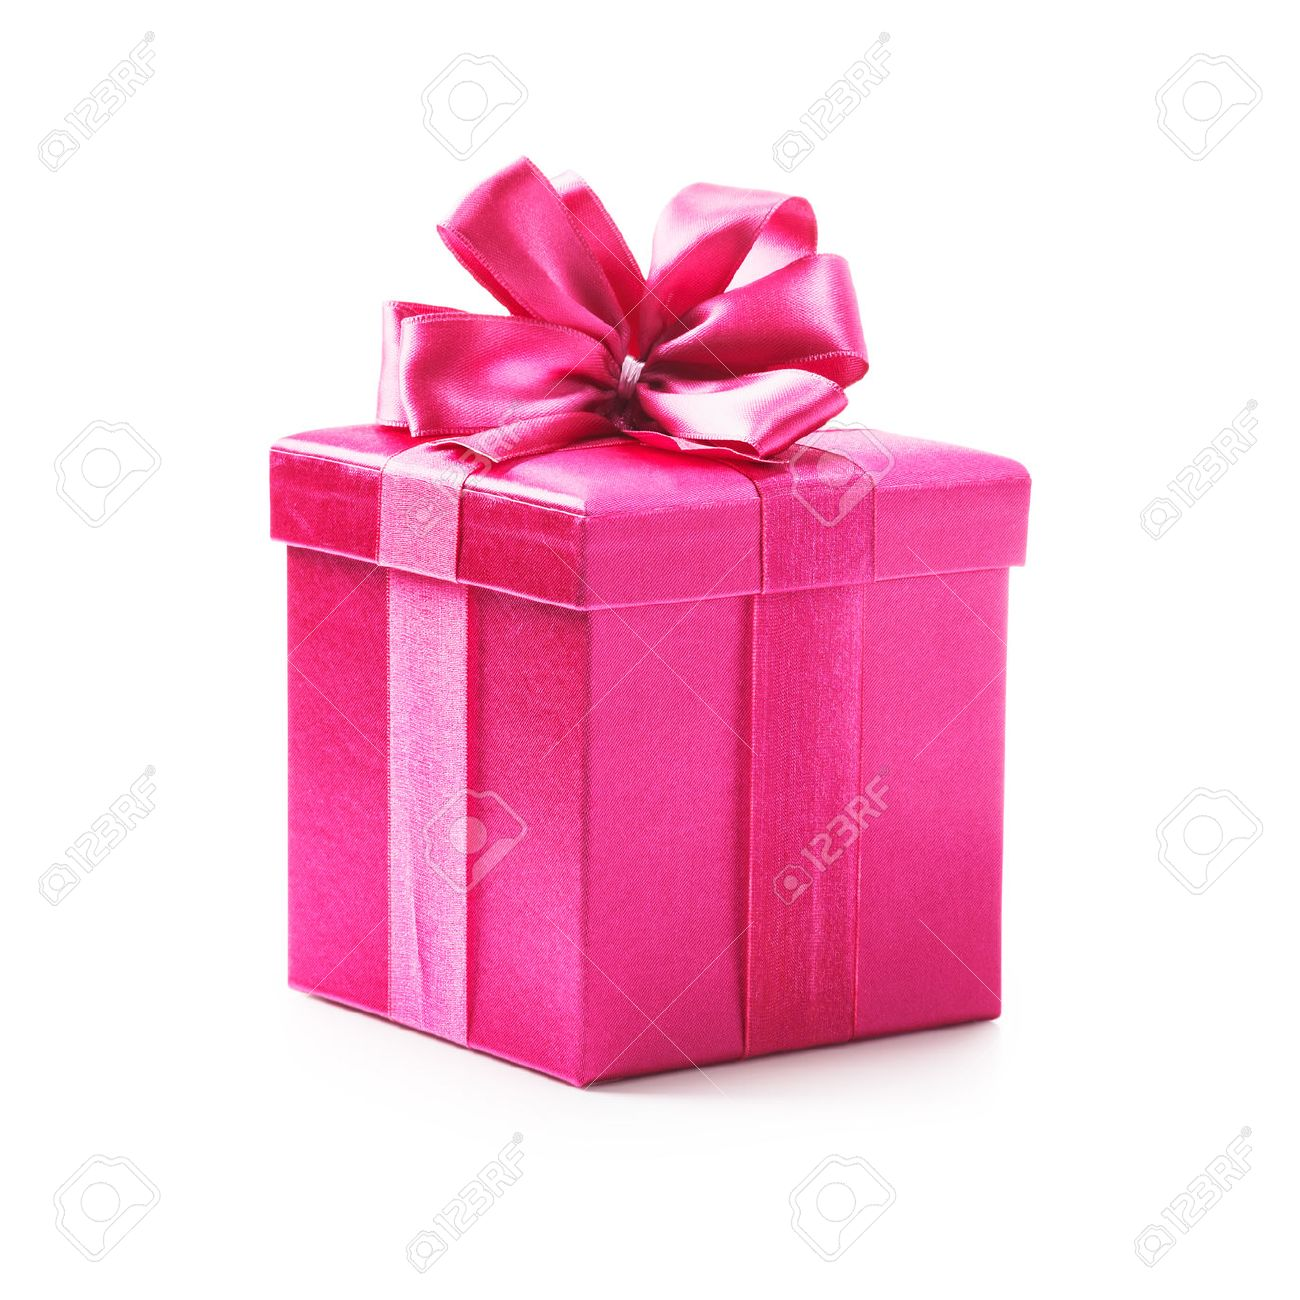 Pink Gift Box With Ribbon Bow. Holiday Present. Object Isolated ...